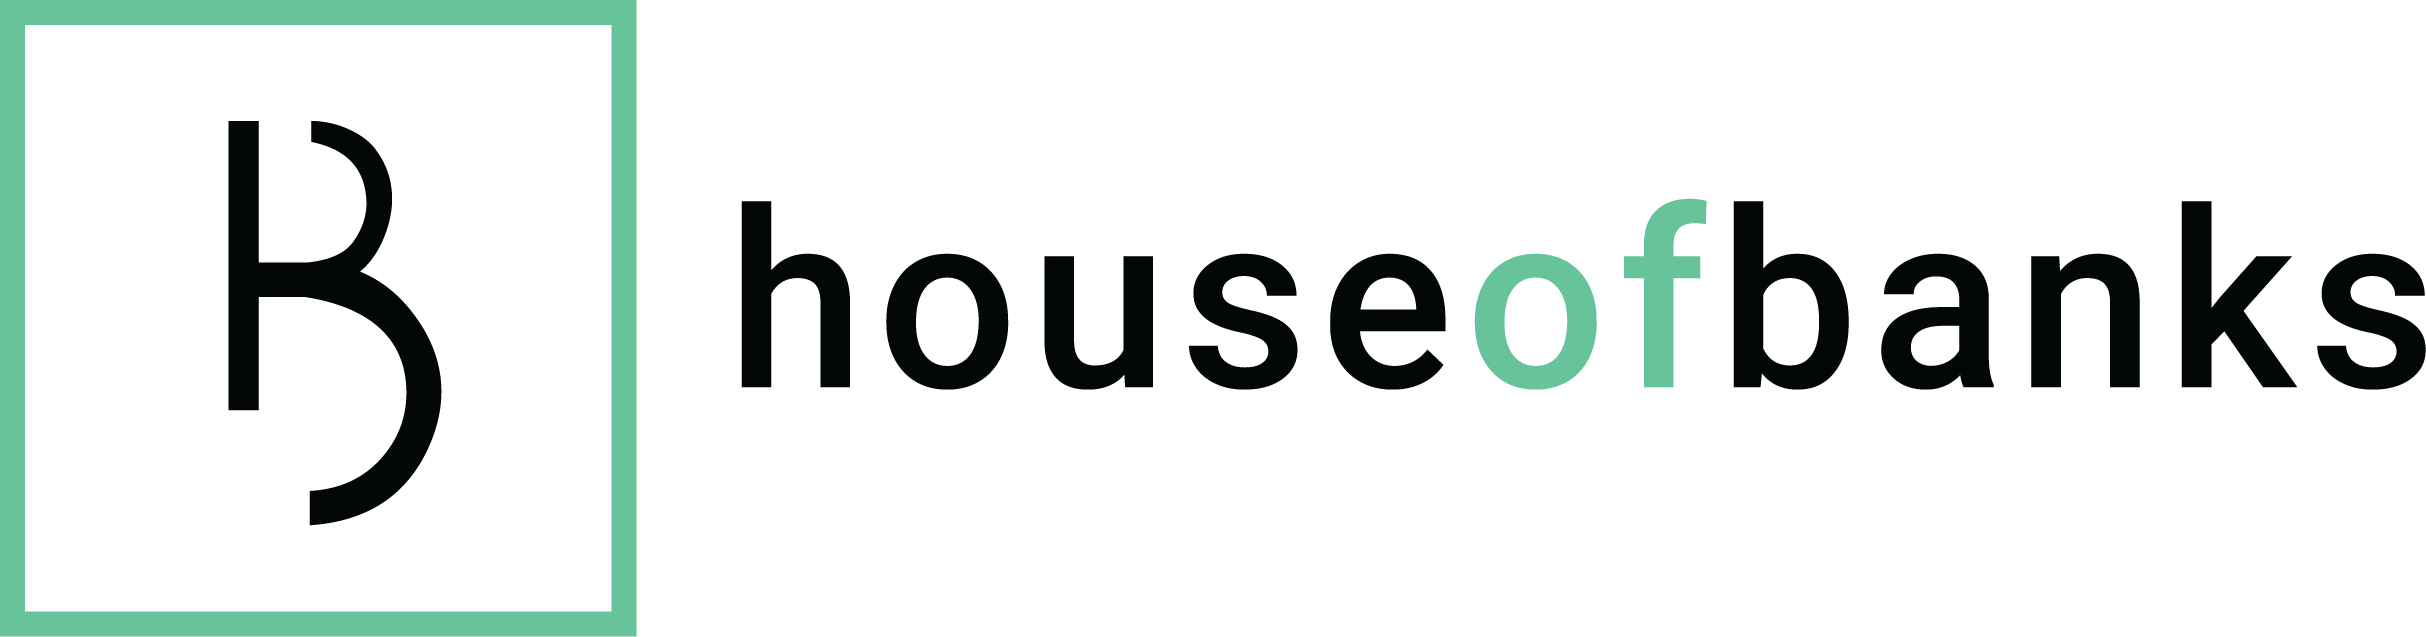 HouseofBanks Logo